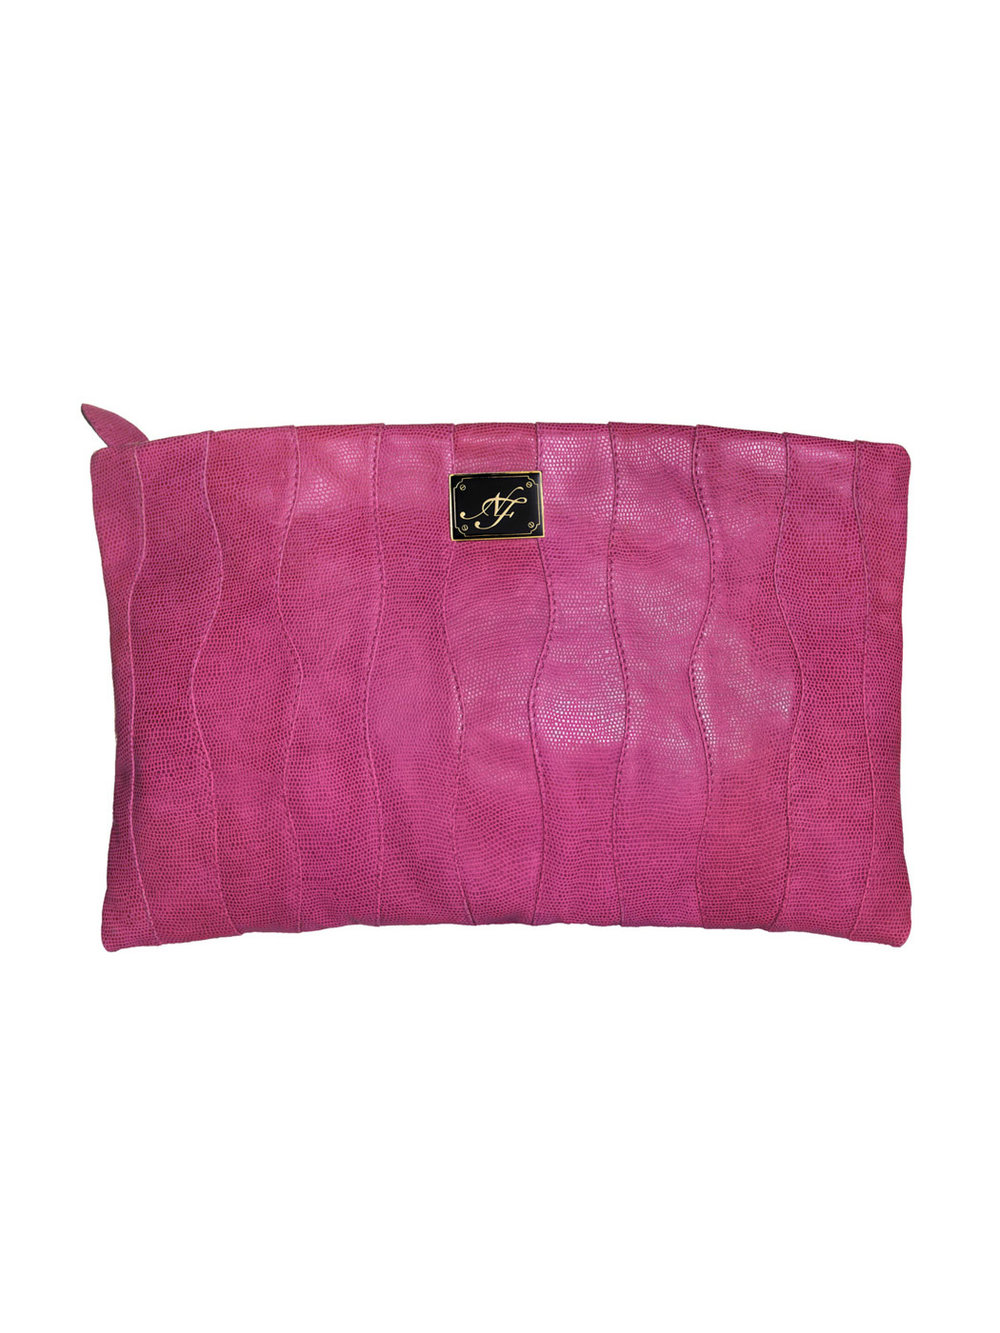 Clutch fucsia - $210